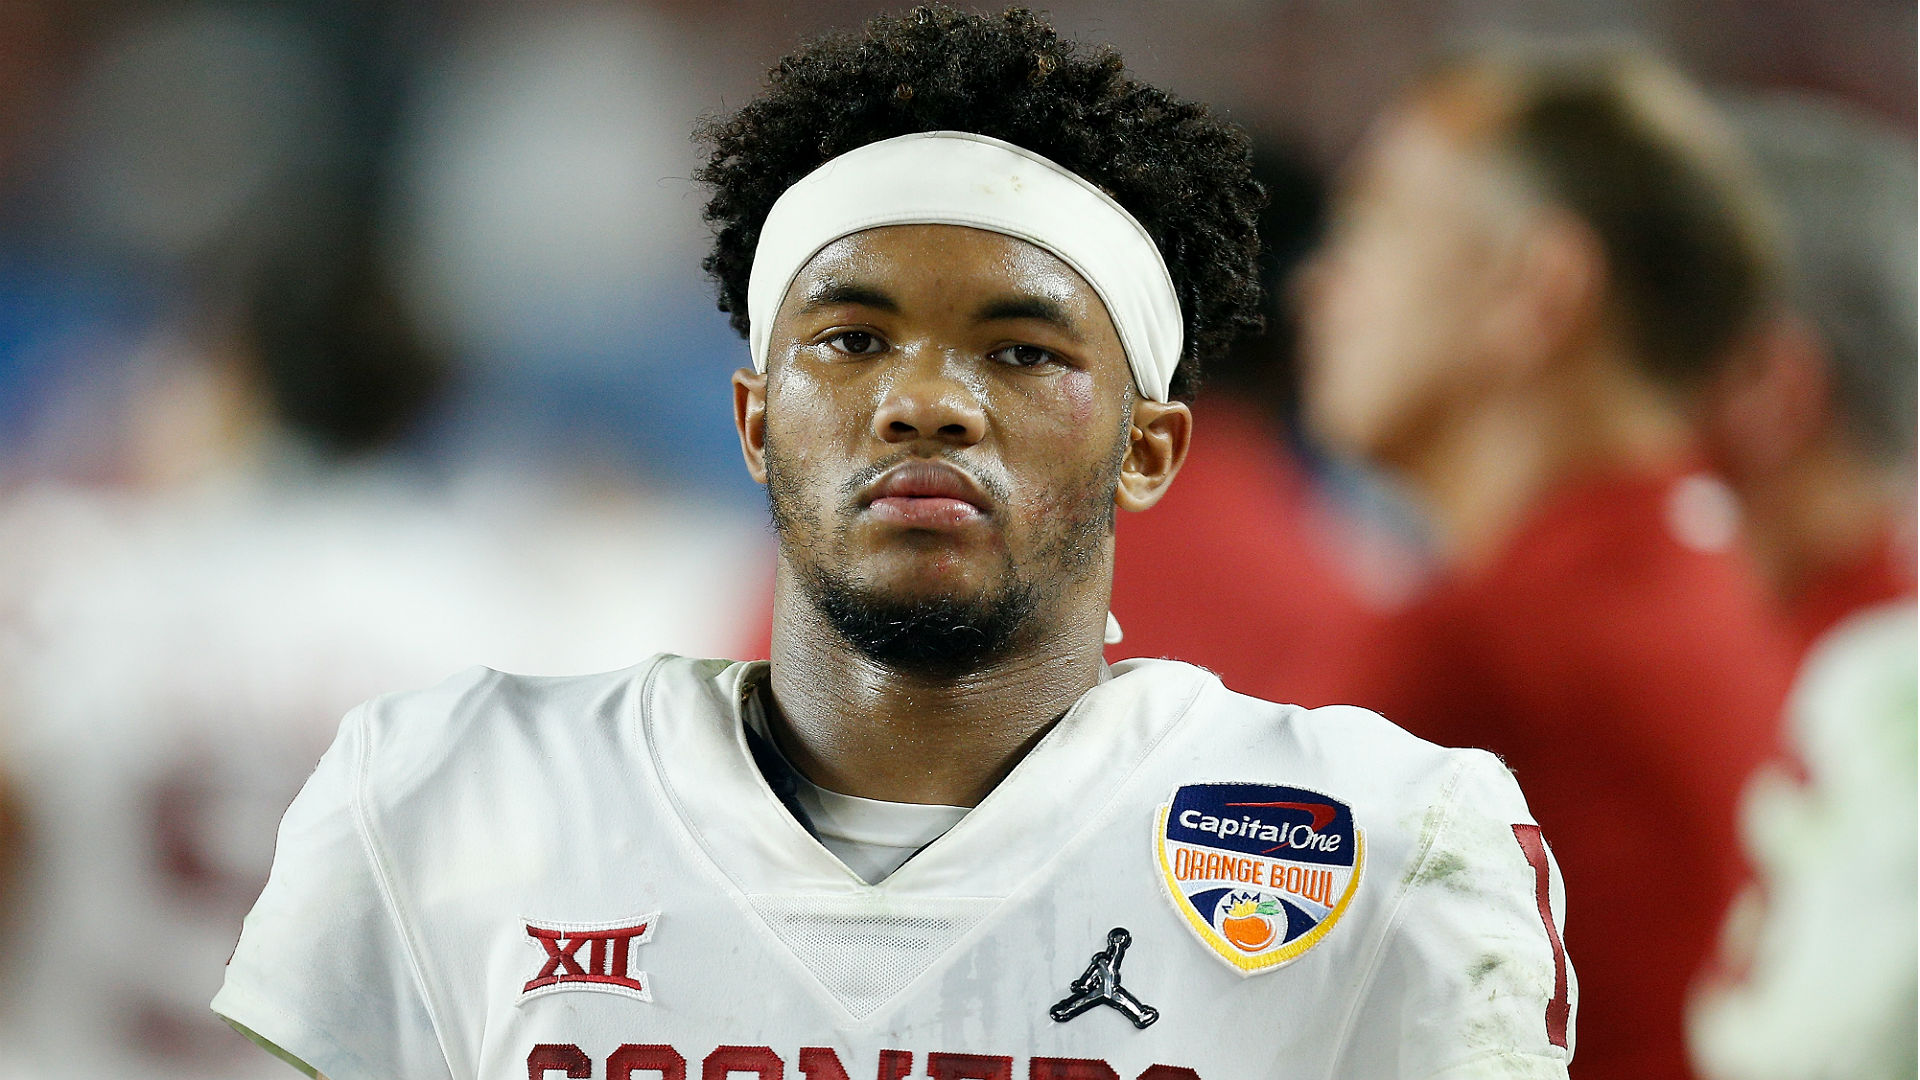 NFL Draft 2019 odds, prop bets: Will Kyler Murray go No. 1 overall?